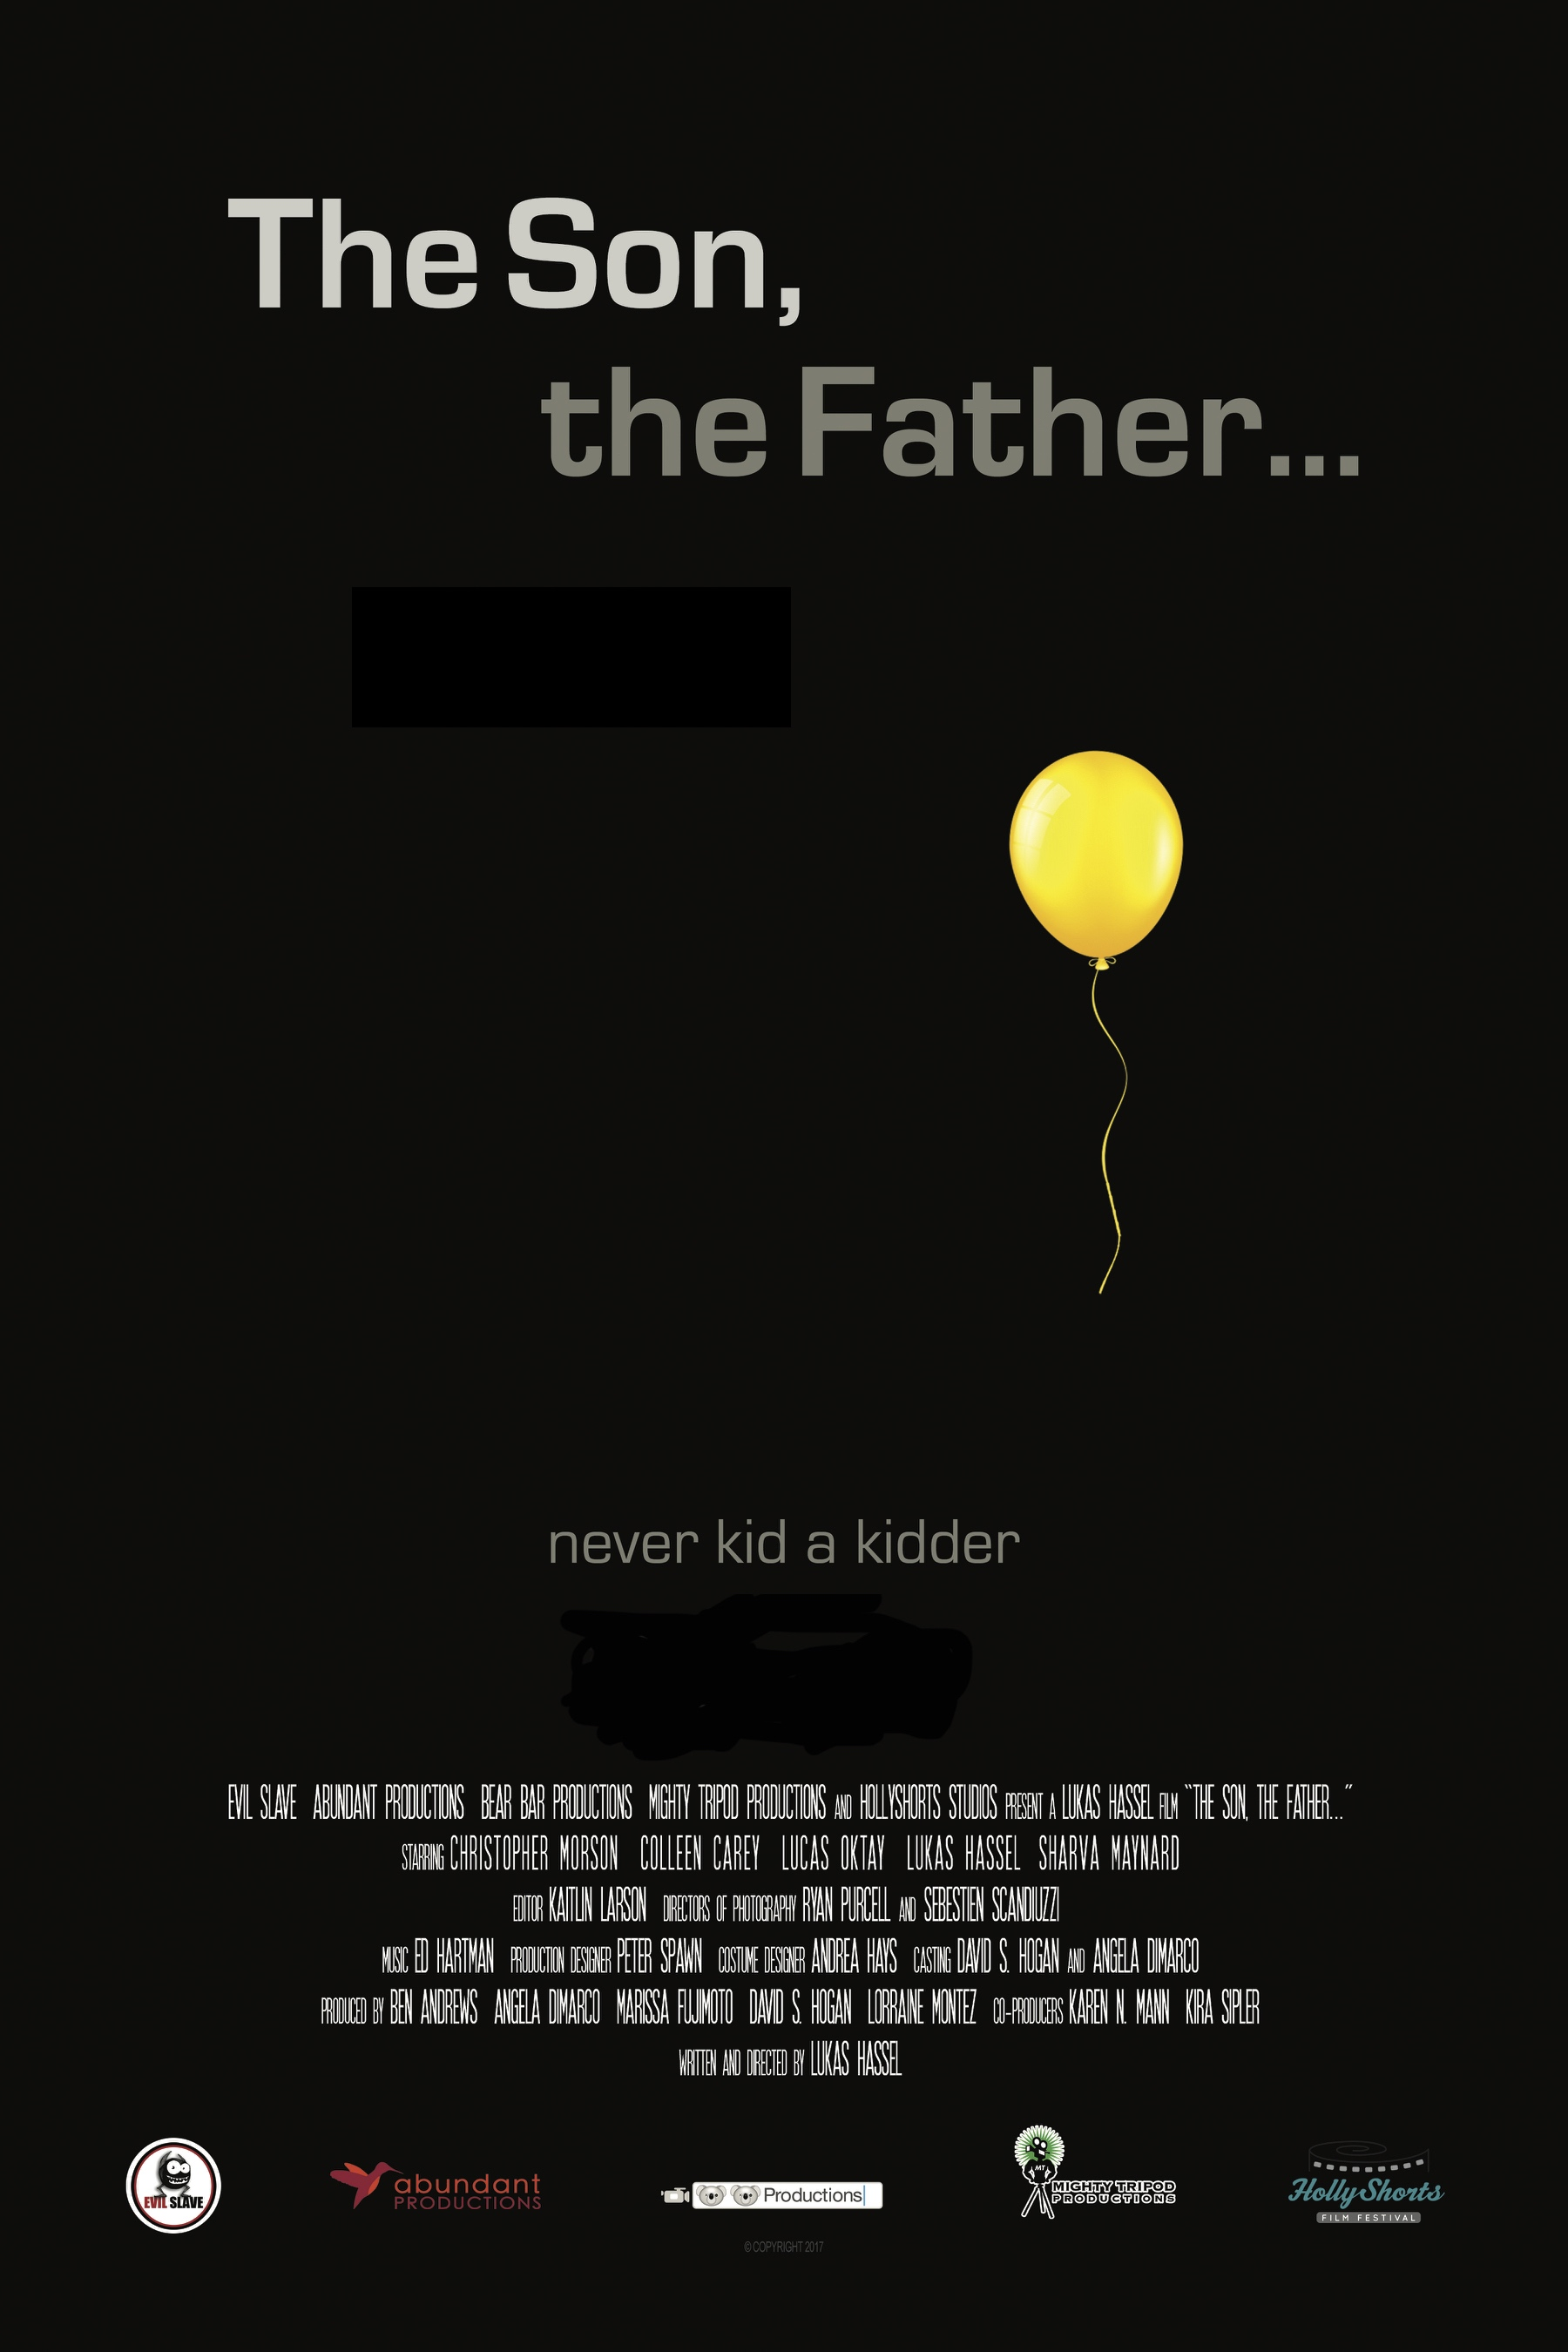 The Son the Father_nolaurelkBG_FINAL (1).jpg